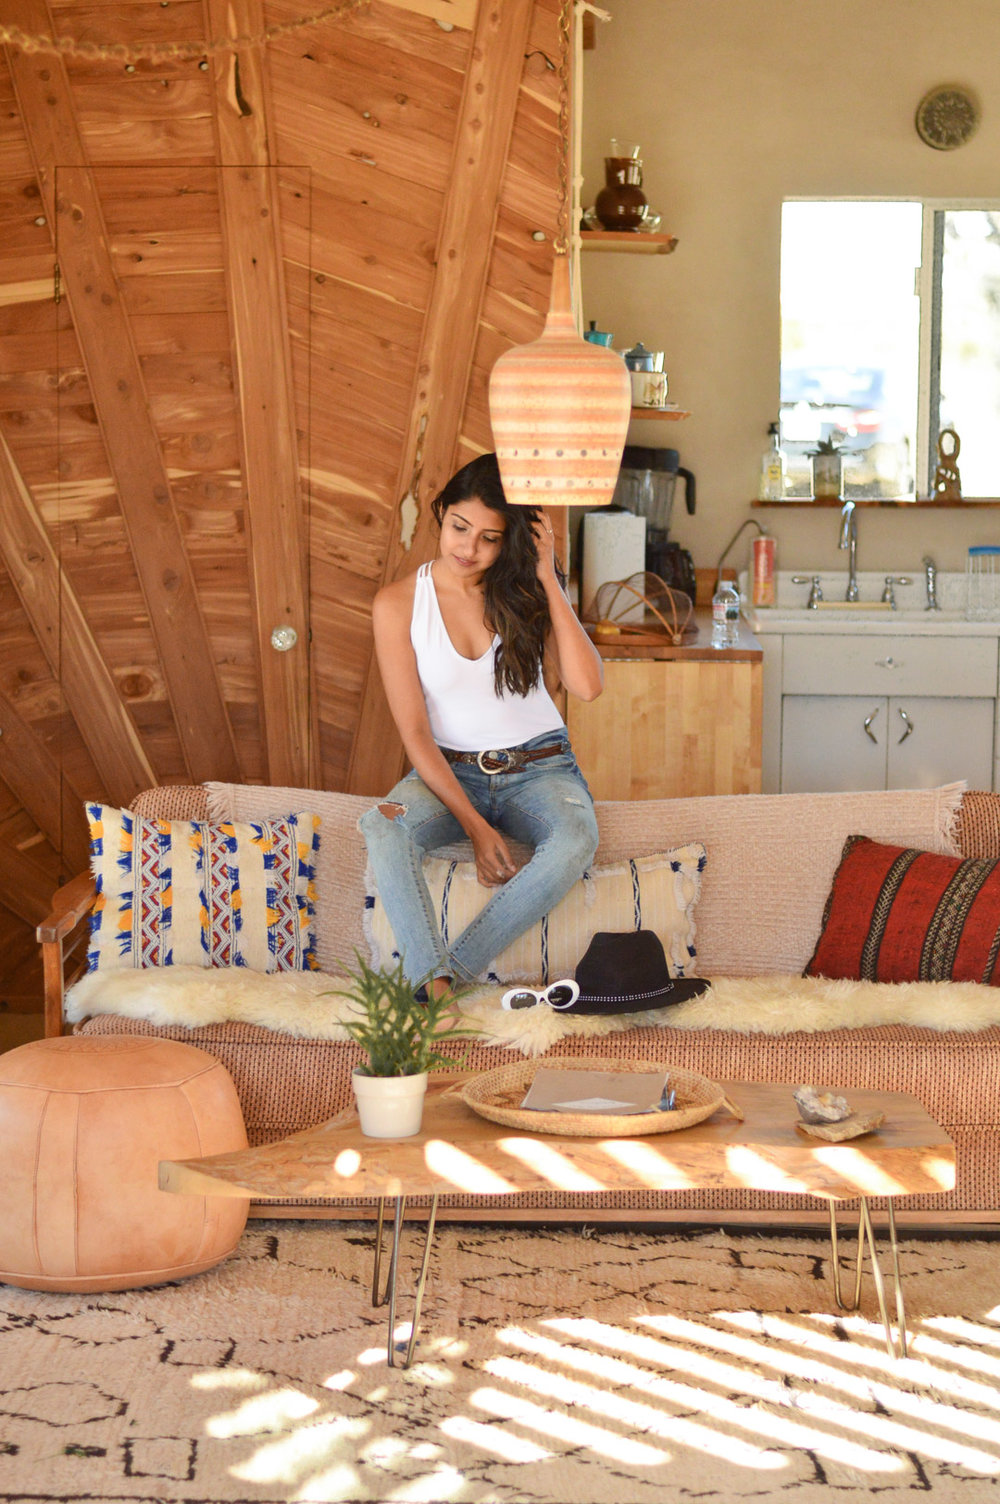 joshua-tree-national-park-california-travel-airbnb-blogger-outfit 12